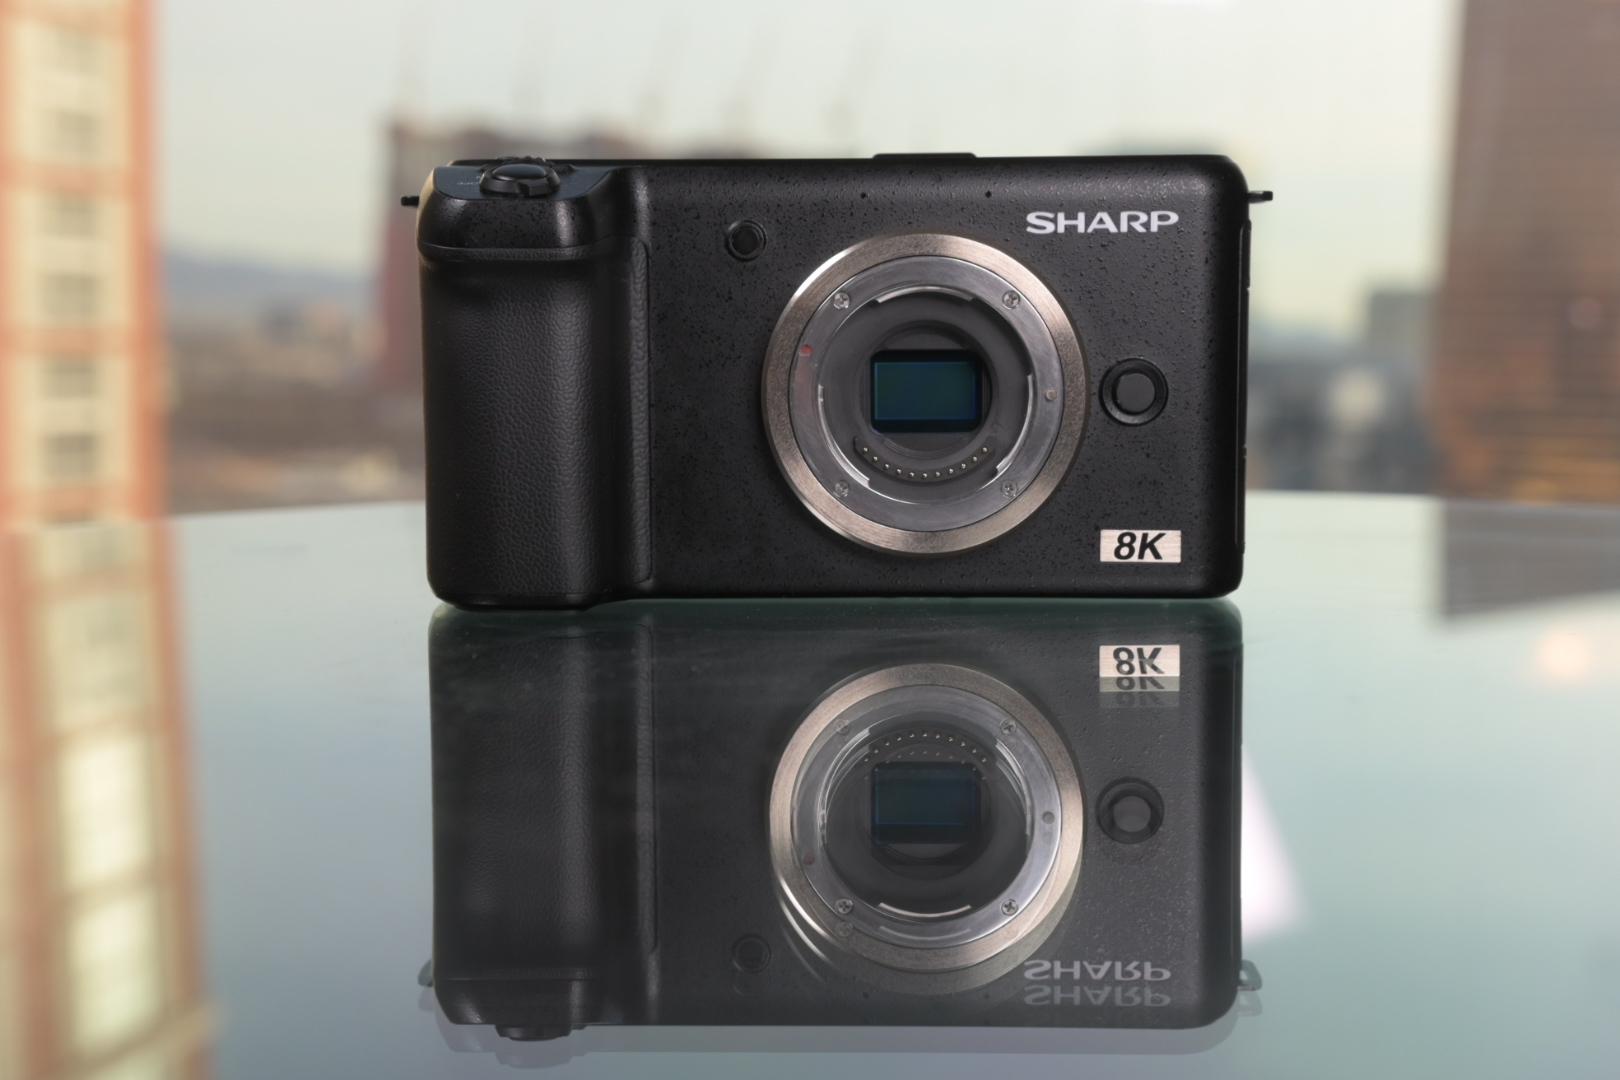 Sharp 8K Video Camera: 33MP Micro Four Thirds sensor, 10-bit 8K at 30fps